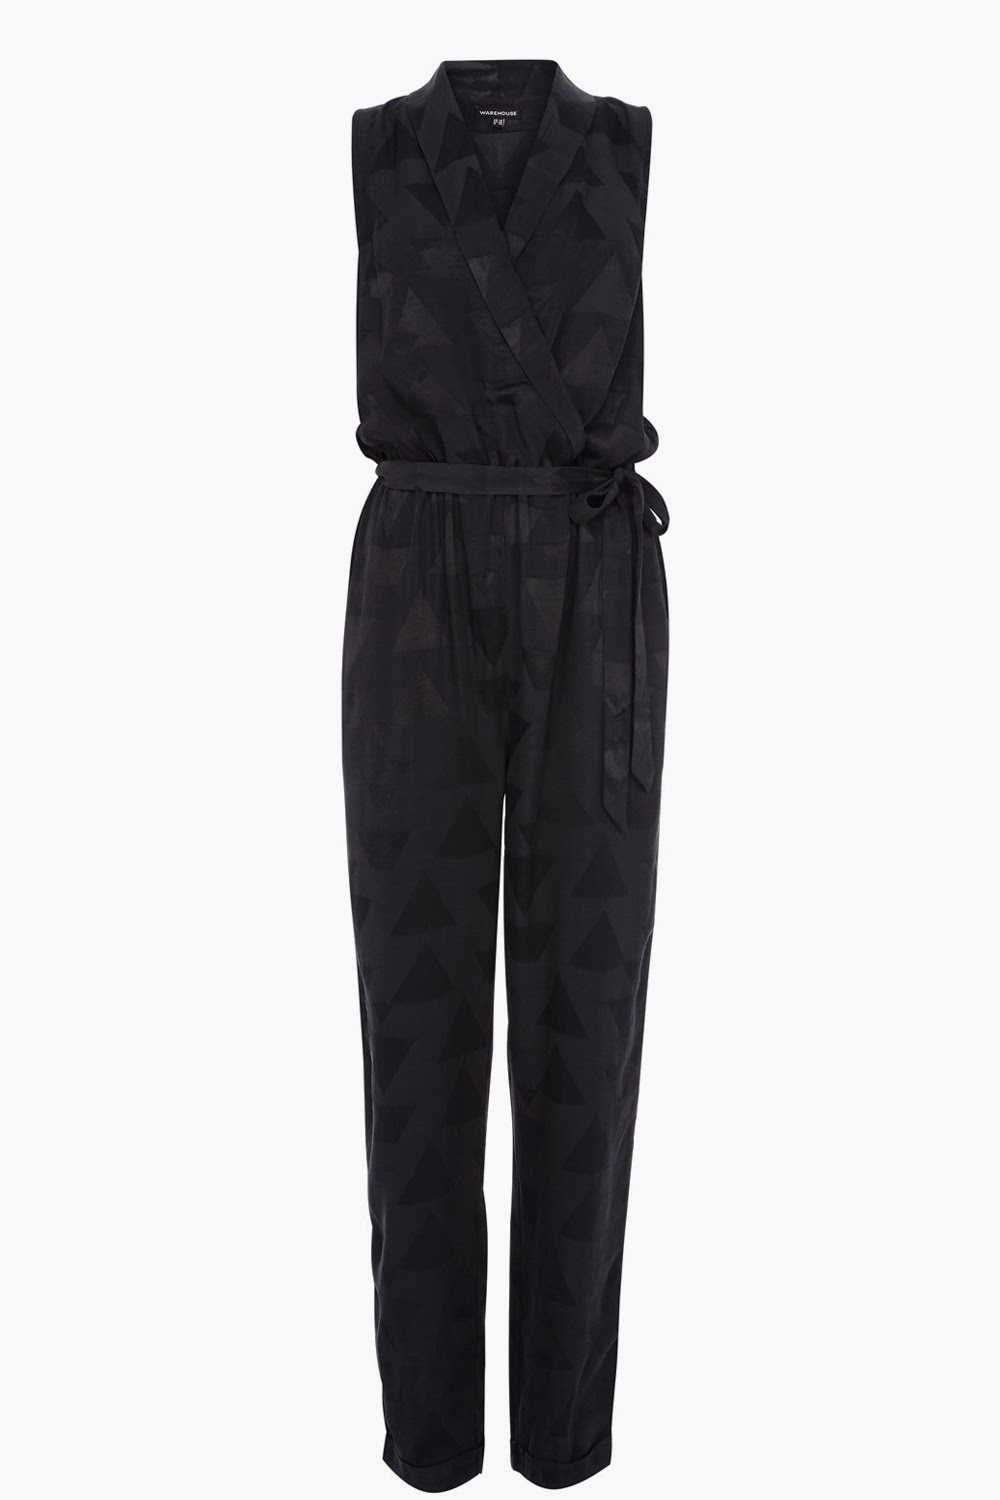 patterned black jumpsuit